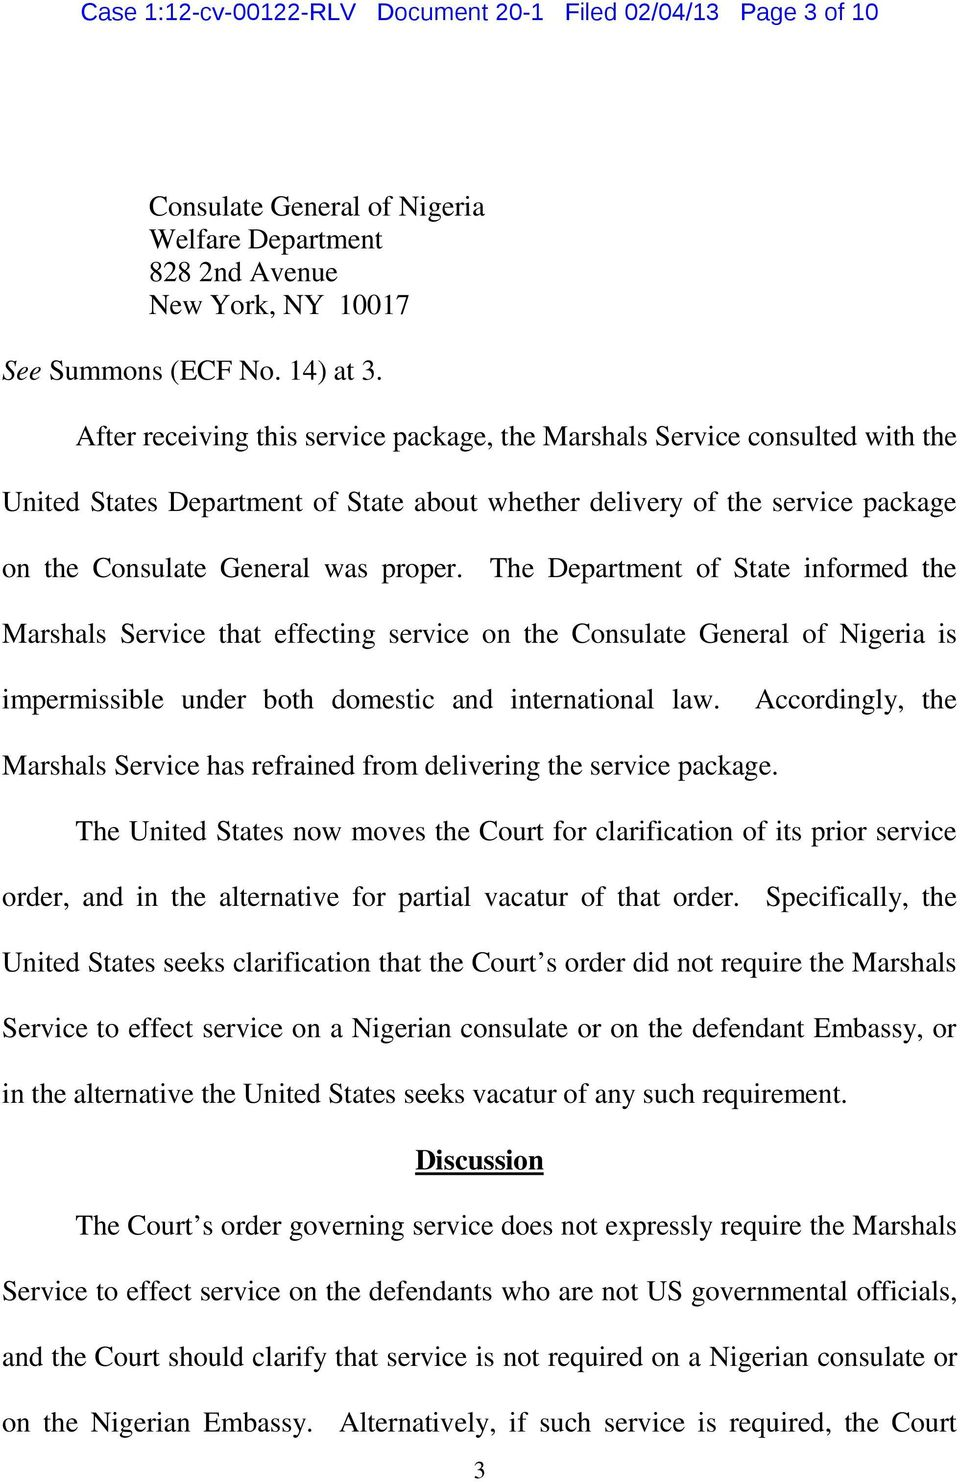 The Department of State informed the Marshals Service that effecting service on the Consulate General of Nigeria is impermissible under both domestic and international law.